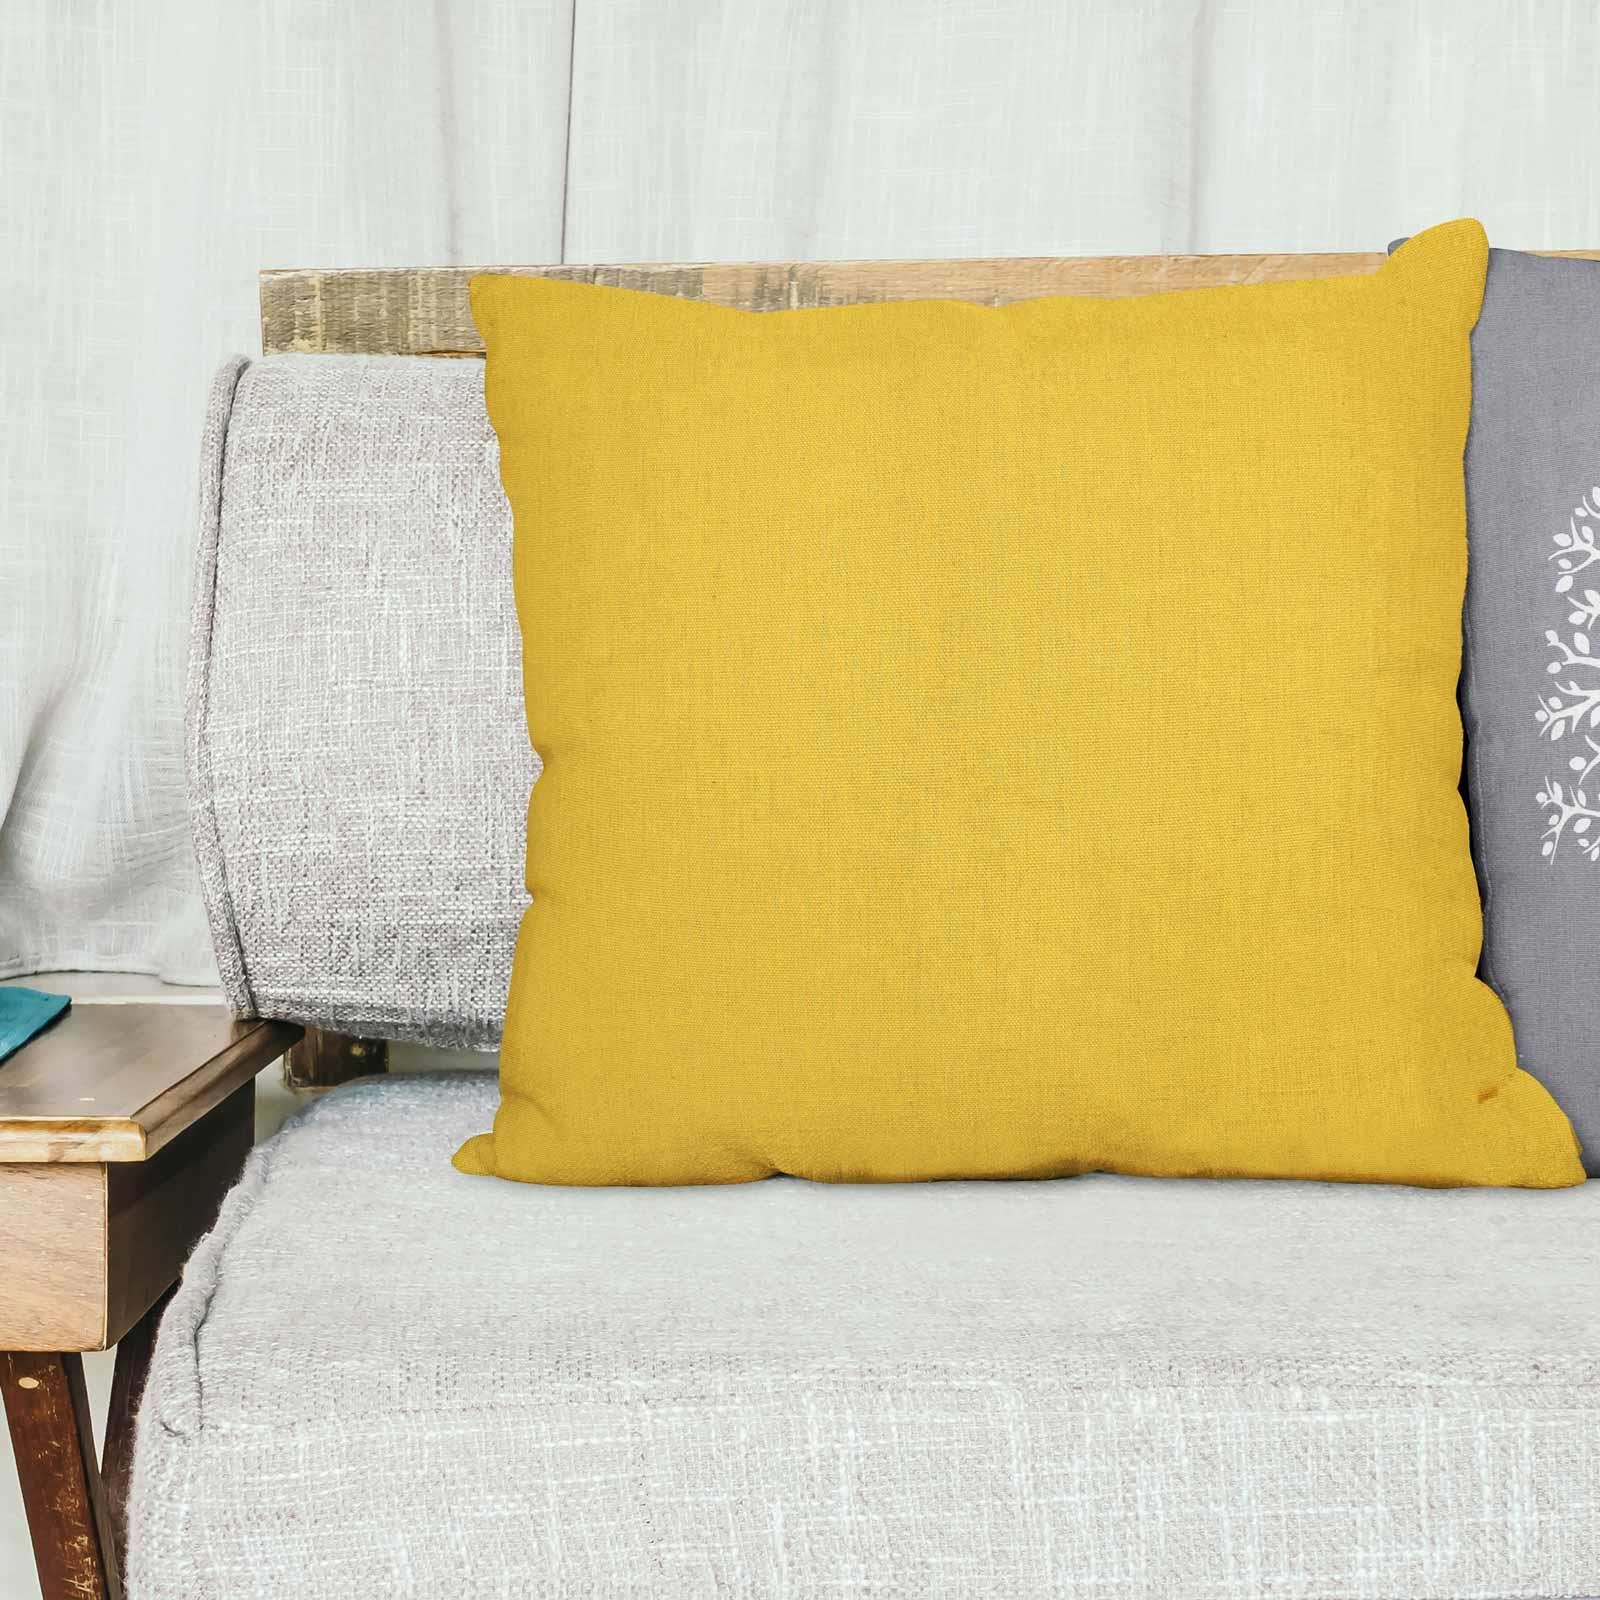 Grey-Ochre-Mustard-Cushion-Cover-Collection-17-034-18-034-Covers-Filled-Cushions thumbnail 73